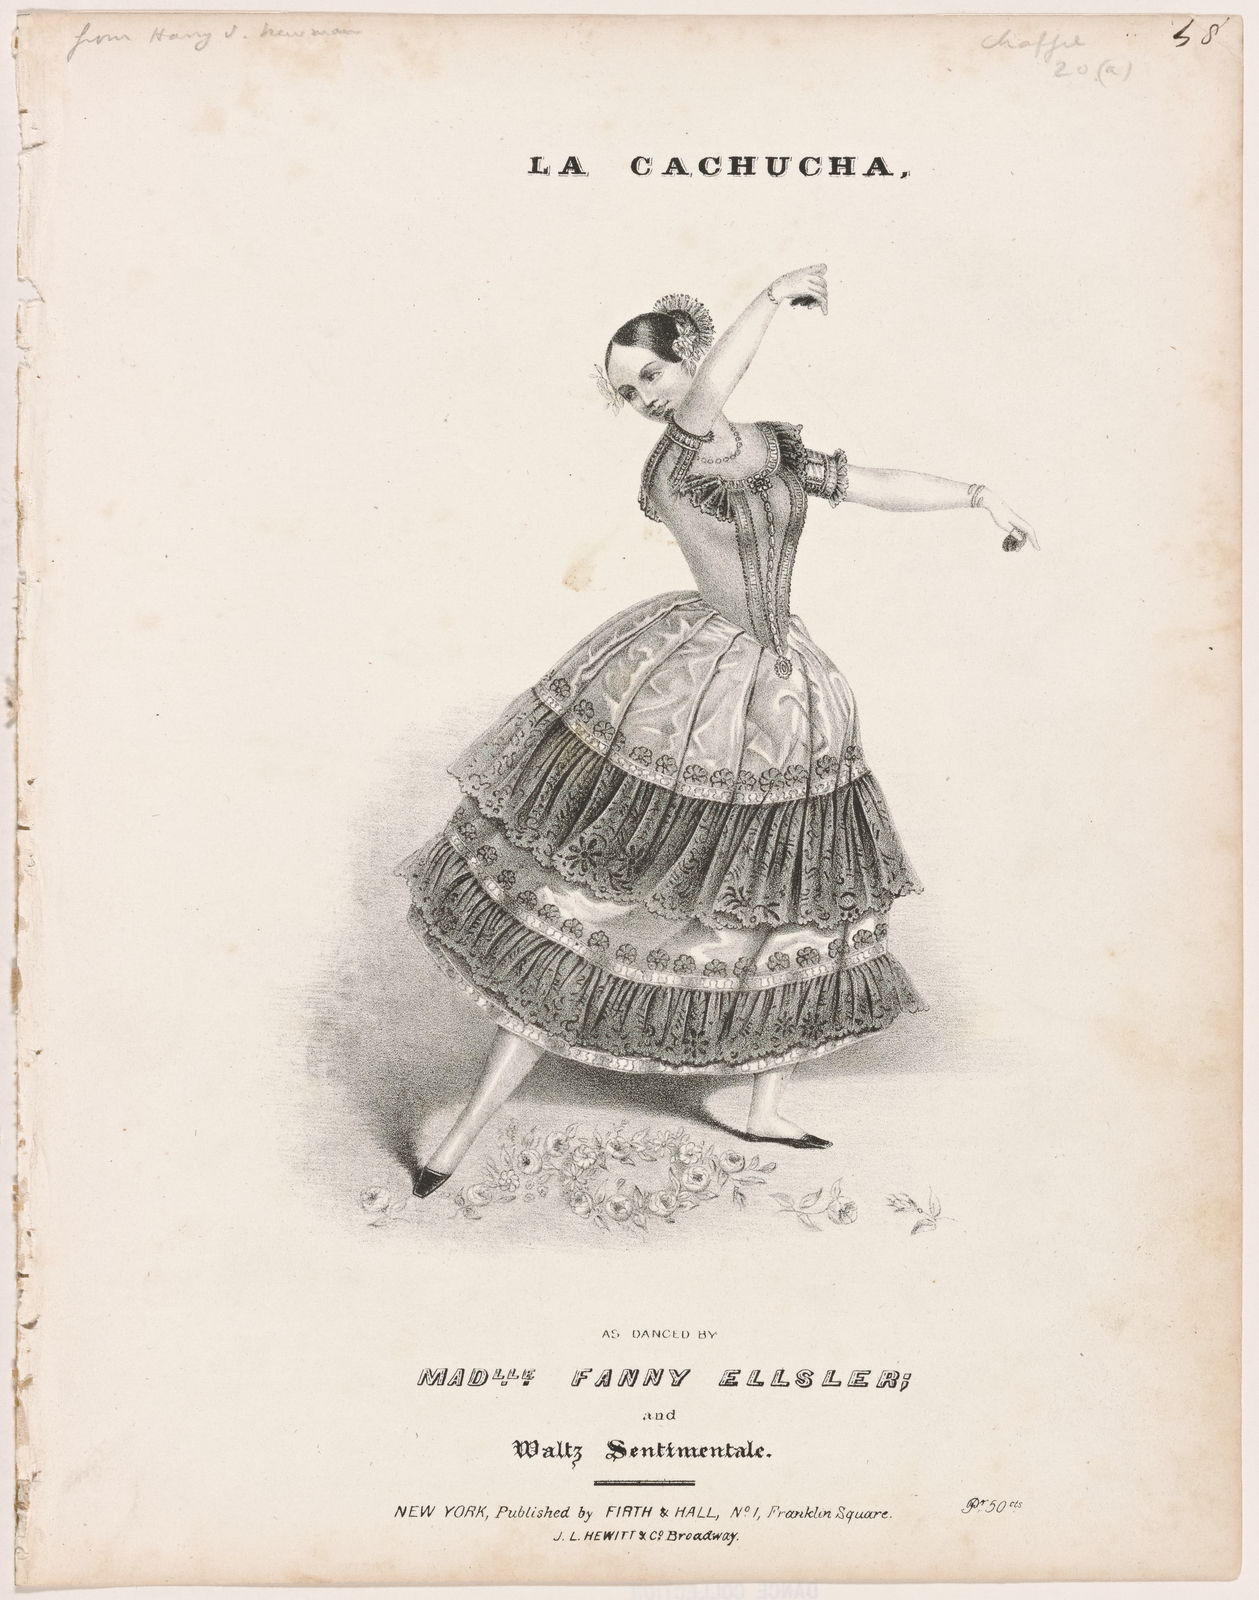 La cachucha, as danced by Madlle Fanny Elssler; and Waltz sentimentale.